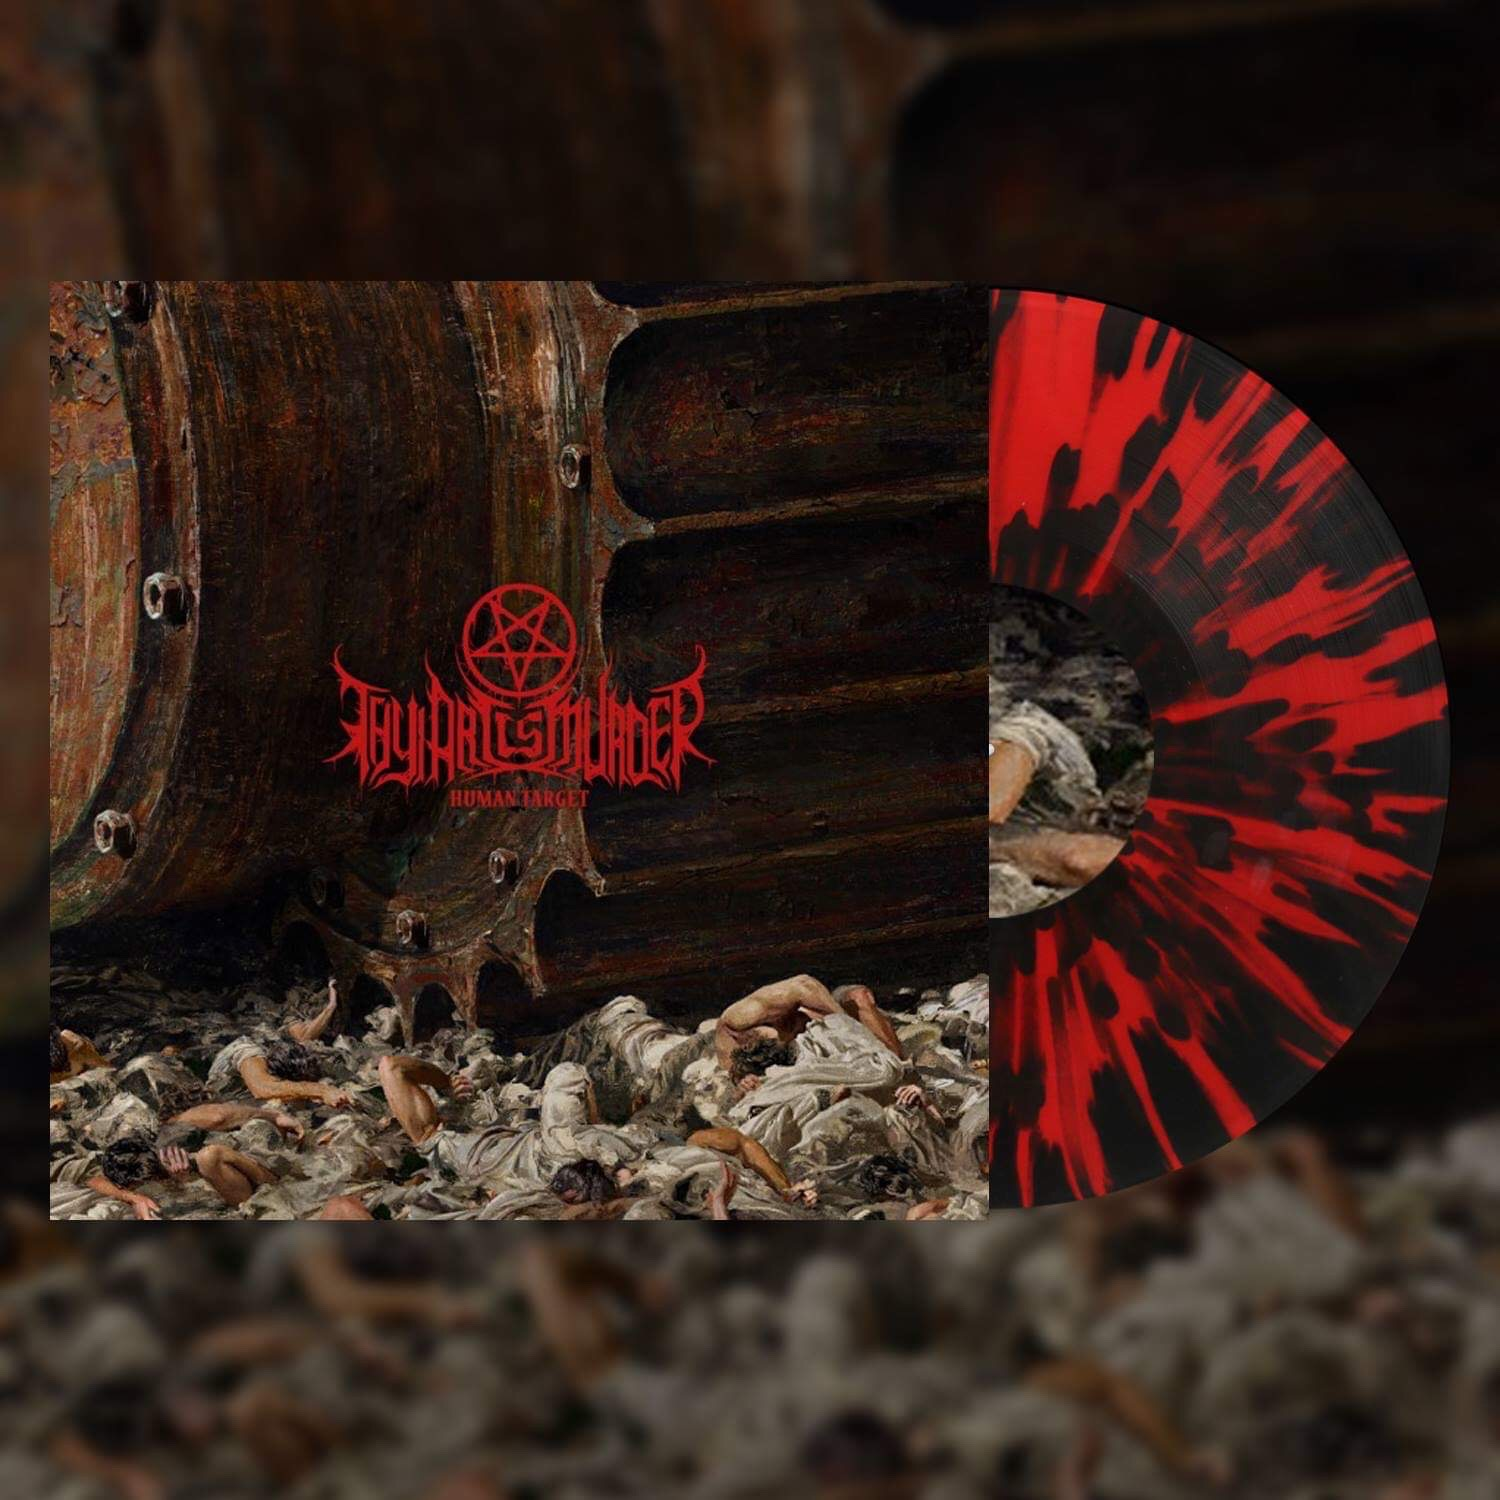 Collectors Bundle (red/black Import vinyl)